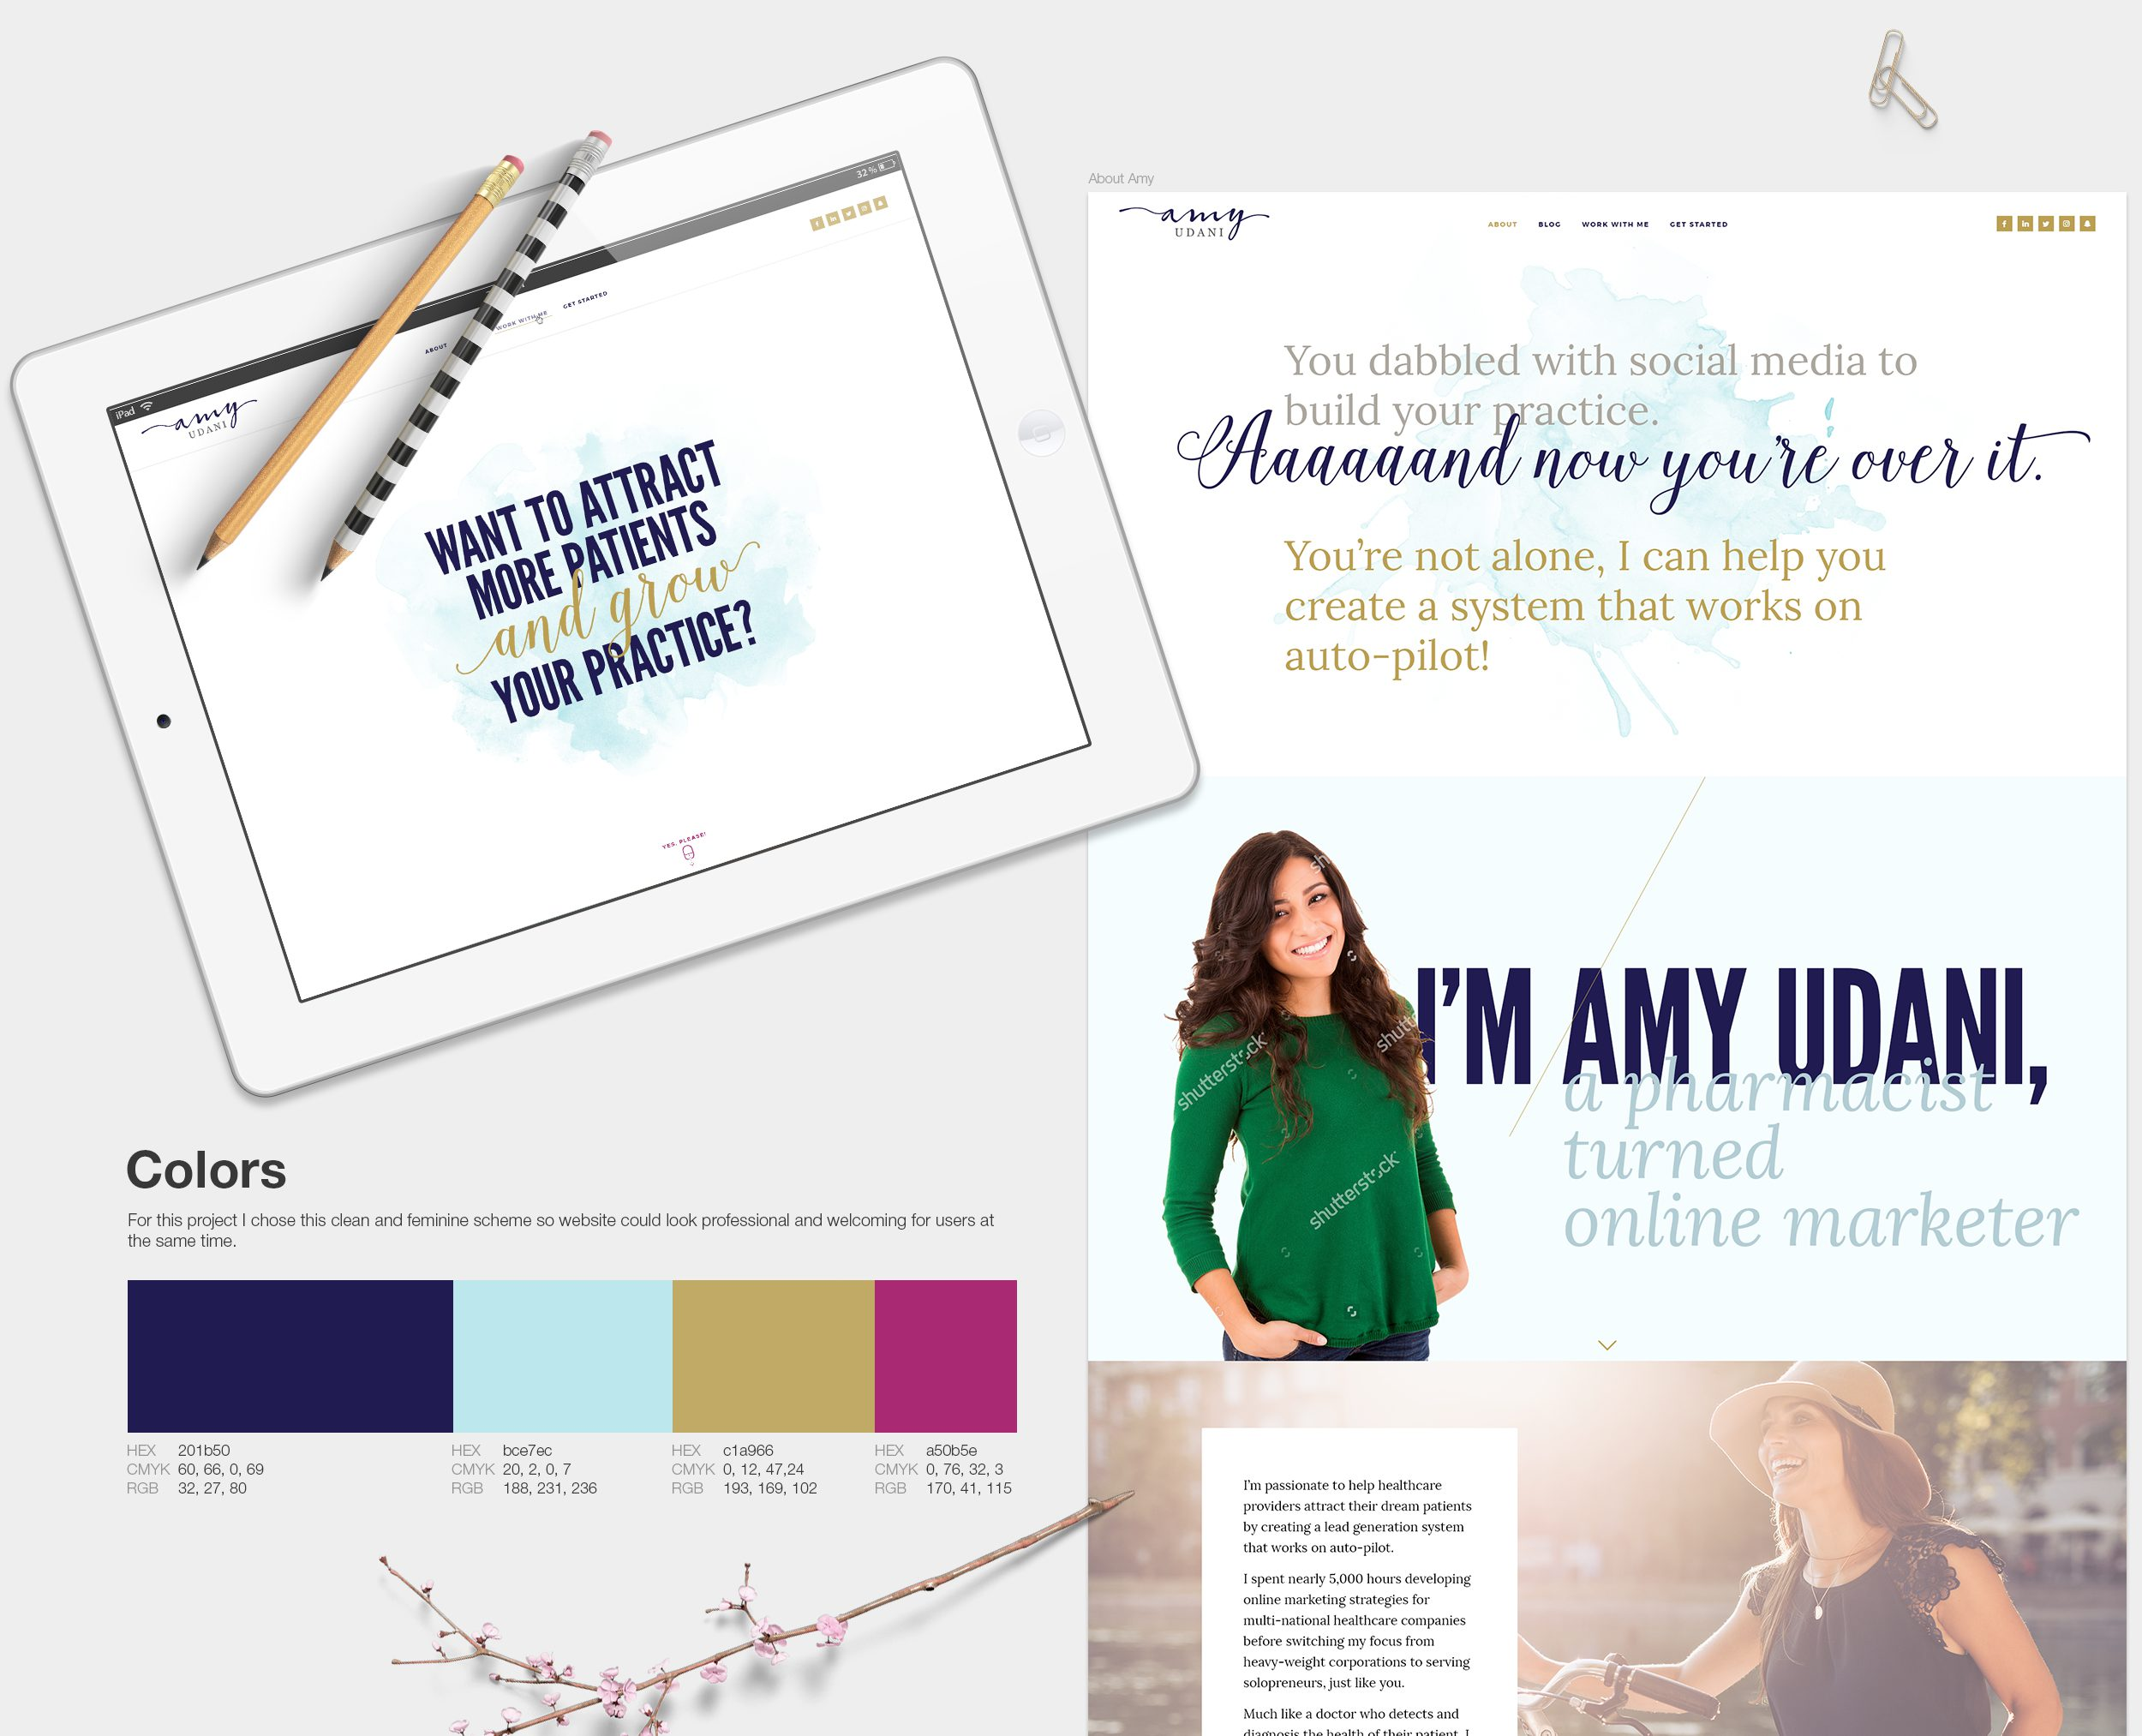 Visual identity elements for a female entrepreneur